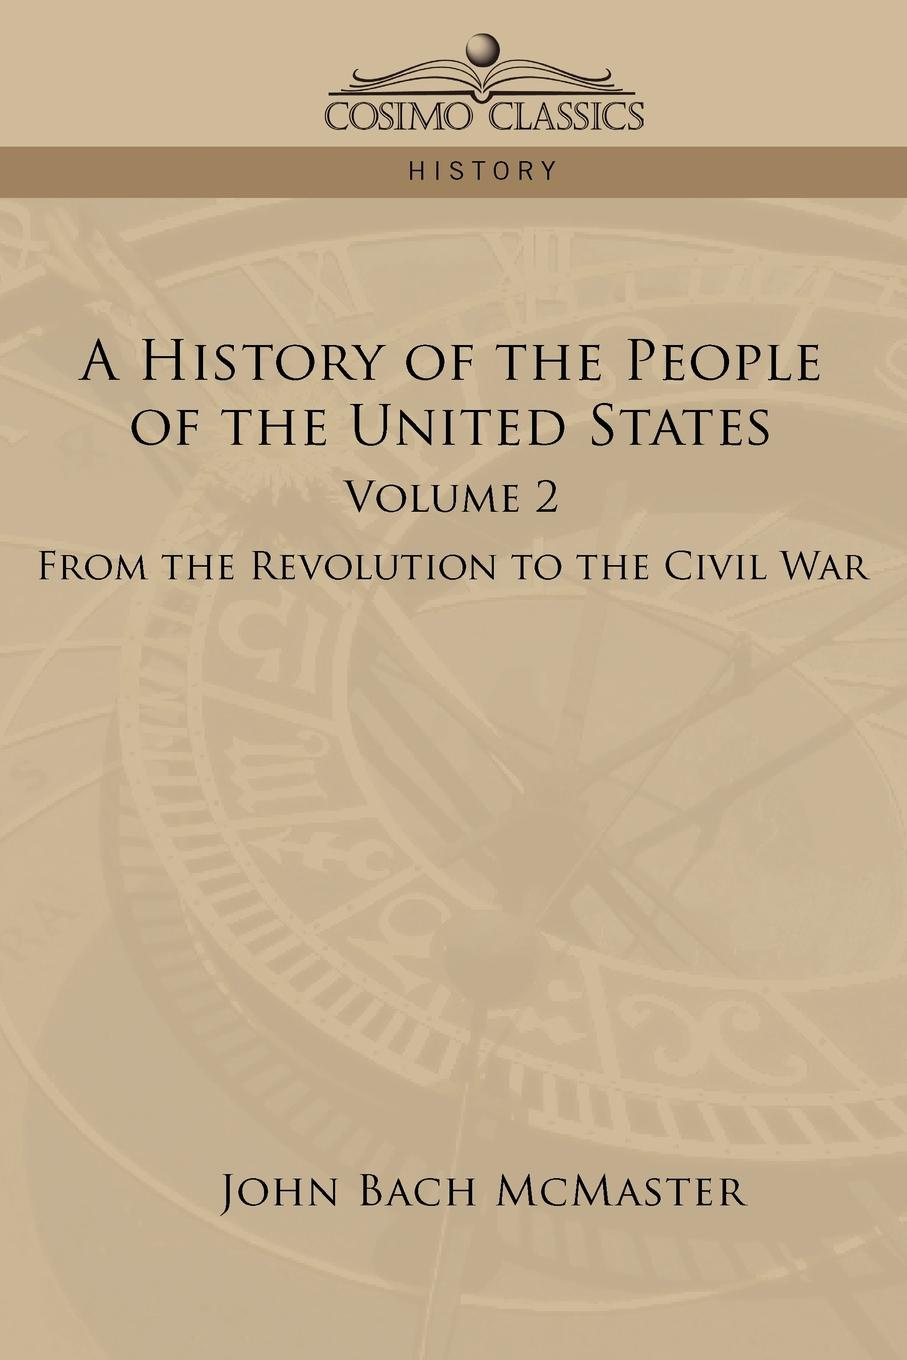 John Bach McMaster A History of the People of the United States. Volume 2 - From the Revolution to the Civil War william abbatt a history of the united states and its people from their earliest records to the present time volume 2